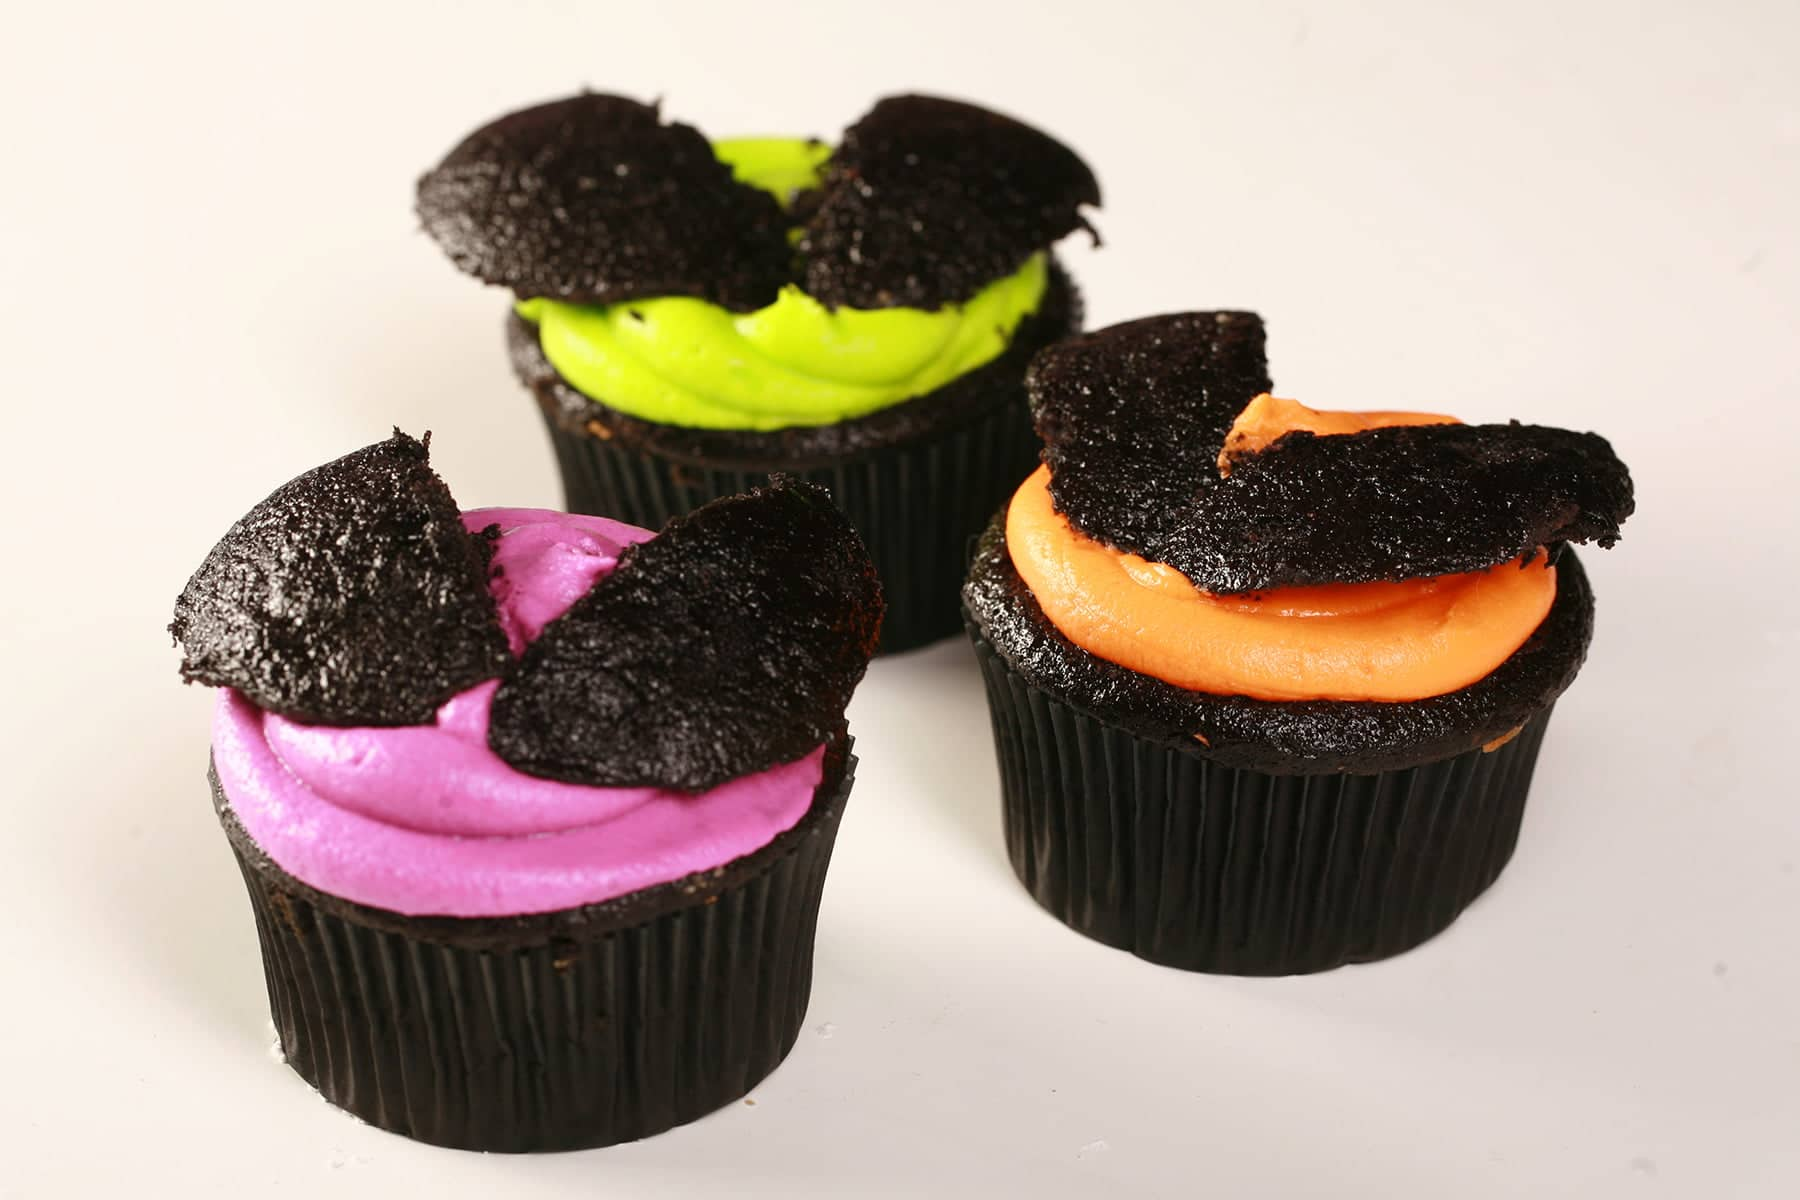 3 Easy halloween Bat Cupcakes - Black Velvet Cupcakes with the dome cut off, frosted with brightly coloured icing - electric purple, lime green, and orange - then the halved dome of the cupcake is re-positioned on top to form bat wings.